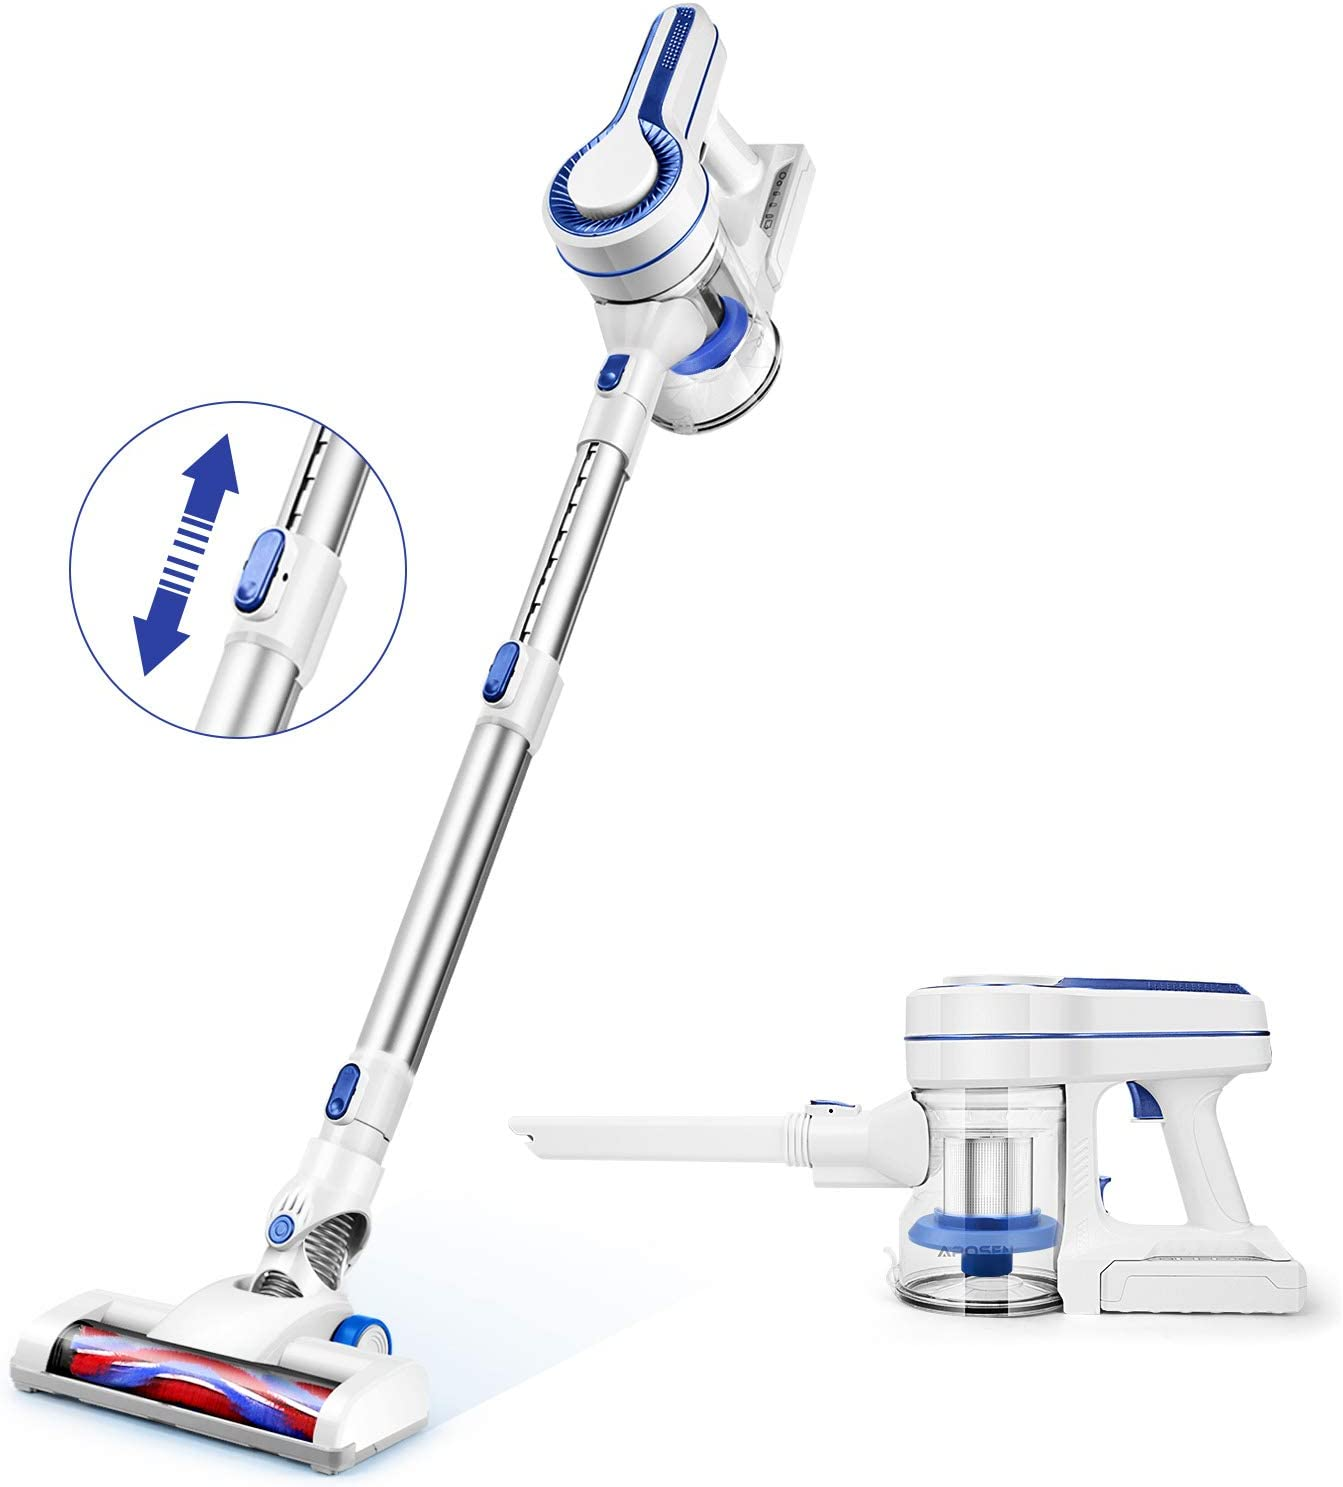 APOSEN Cordless Vacuum Cleaner 4 in 1 Extension Wand Detachable Battery 35min Runtime Stick Vacuum HEPA Sponge Filtration H120